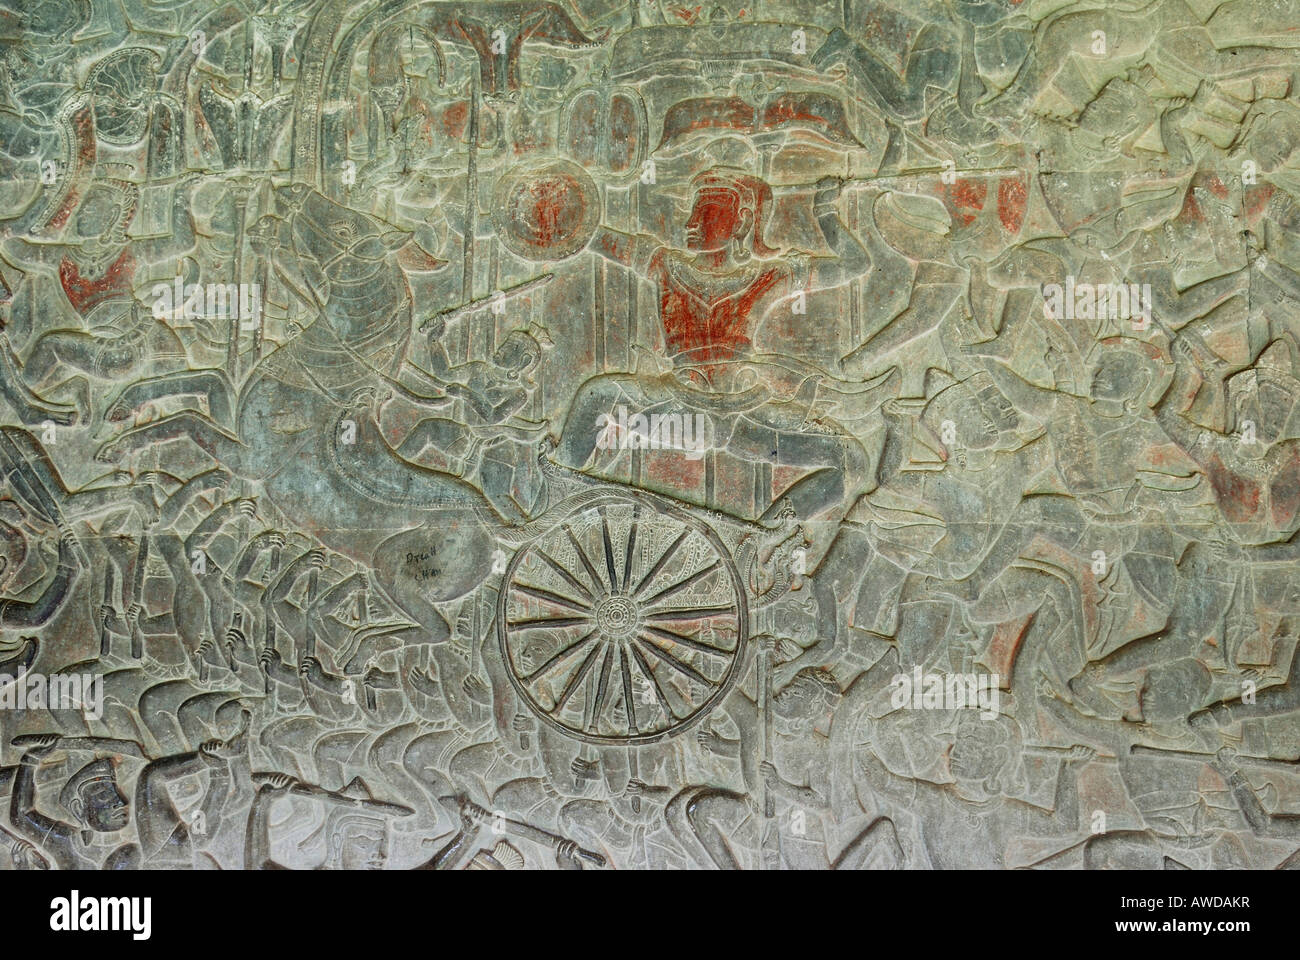 Bas-relief showing a battle scene, Angkor Wat temple, Cambodia - Stock Image